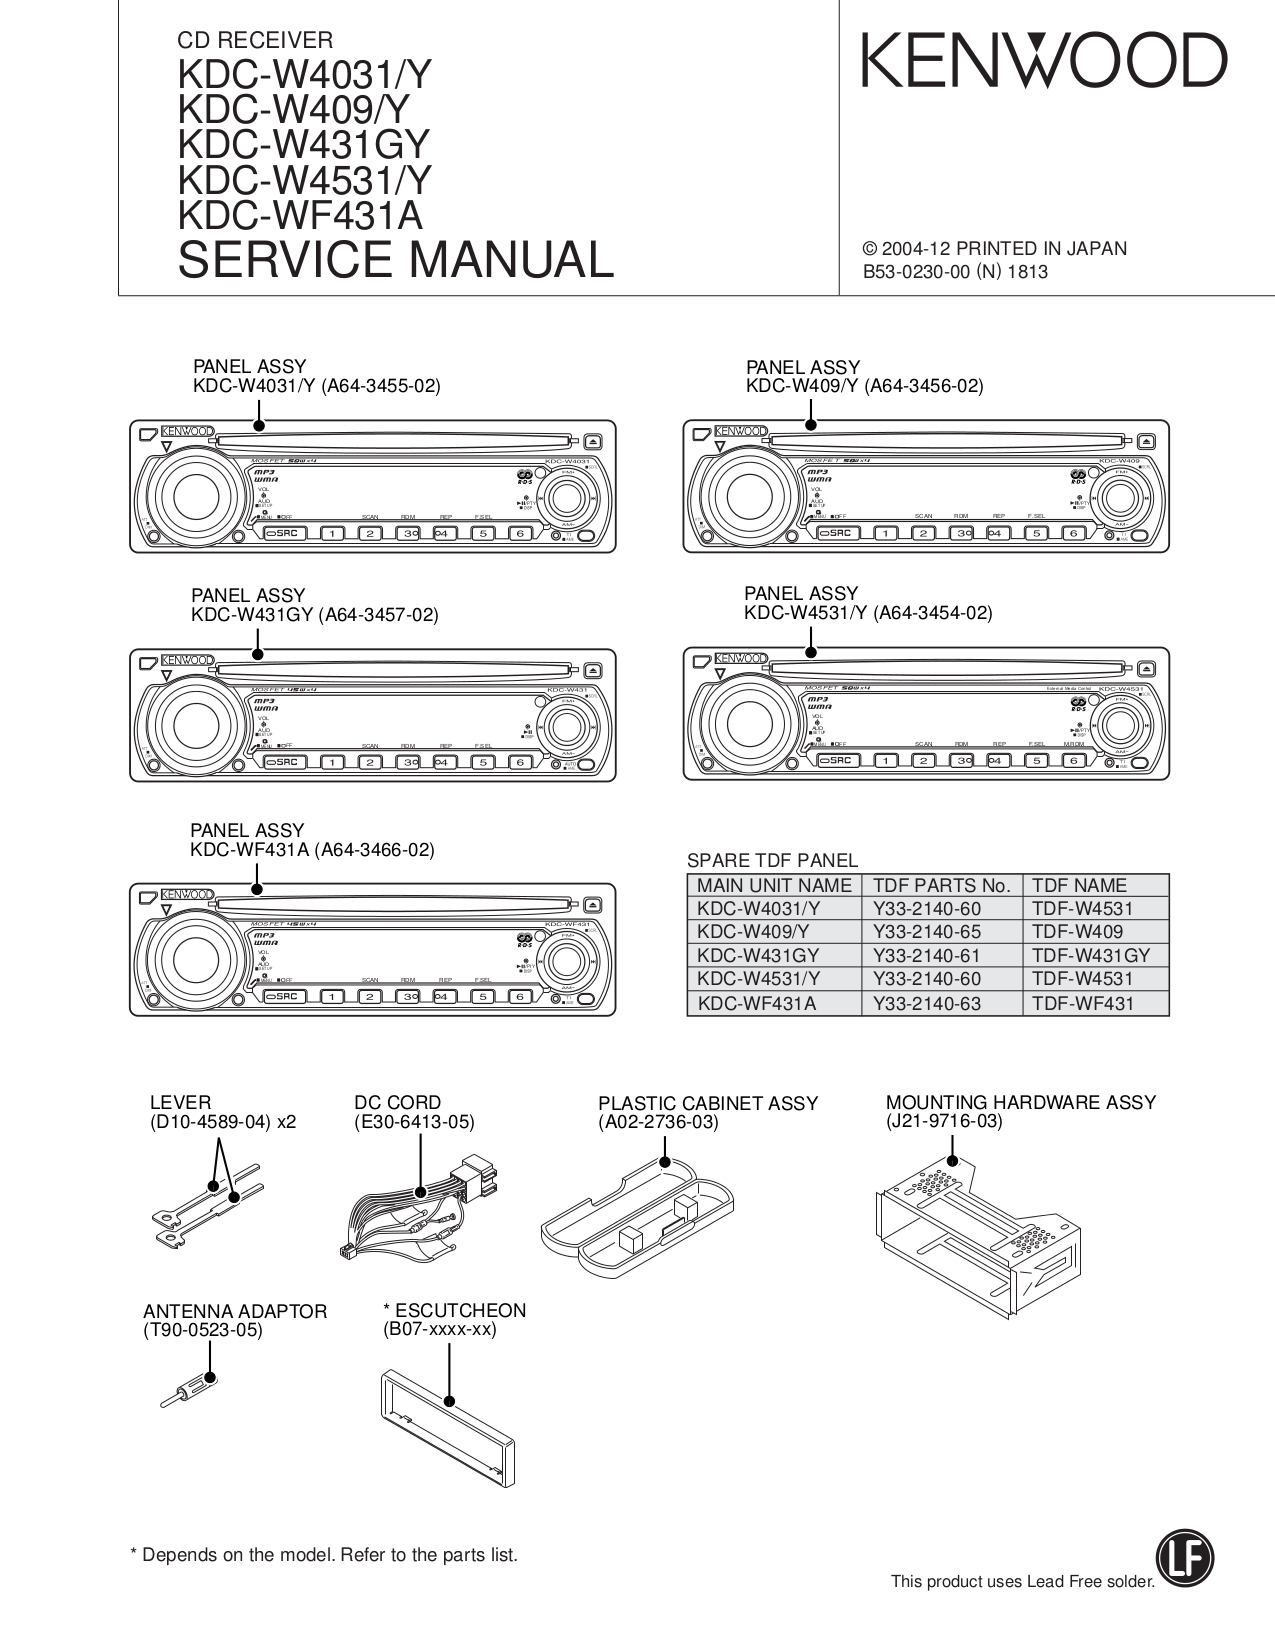 Kenwood Kdc 122 Wiring Diagram 30 Images Alpine Car Stereo Harness W4031 W409 W431gy W4531 Wf431apdf 0 Download Free Pdf For 519 Receiver Manual